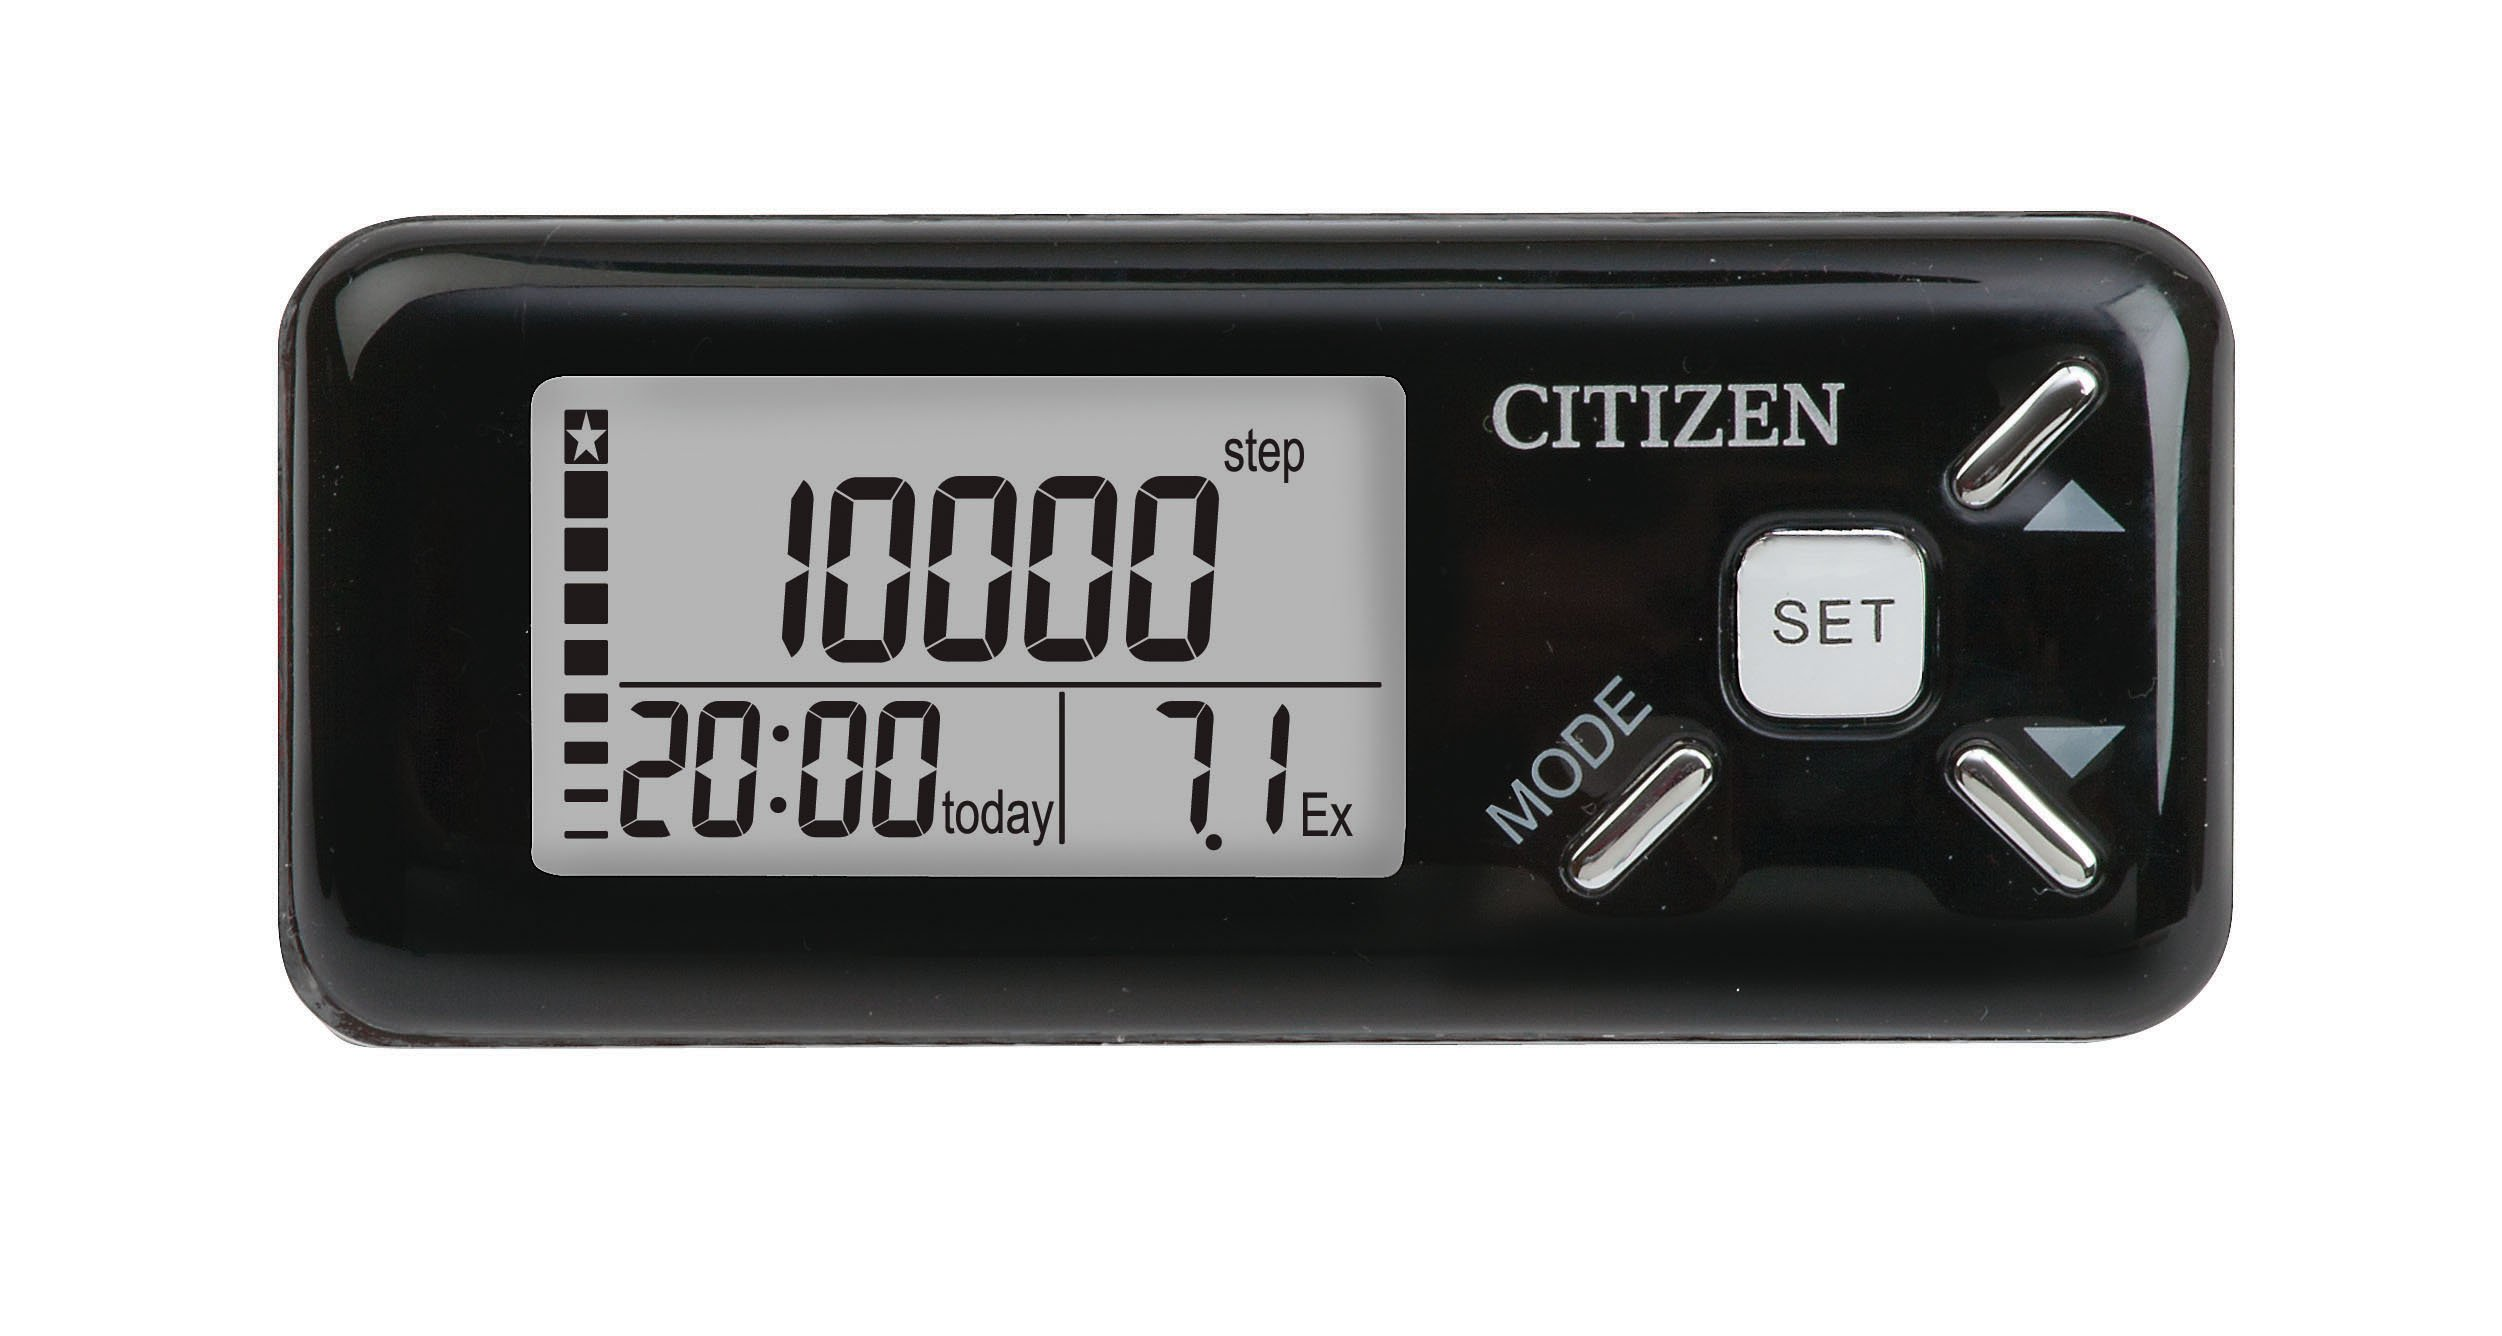 Citizen TW-610B Deluxe Pedometer, Black by Citizen